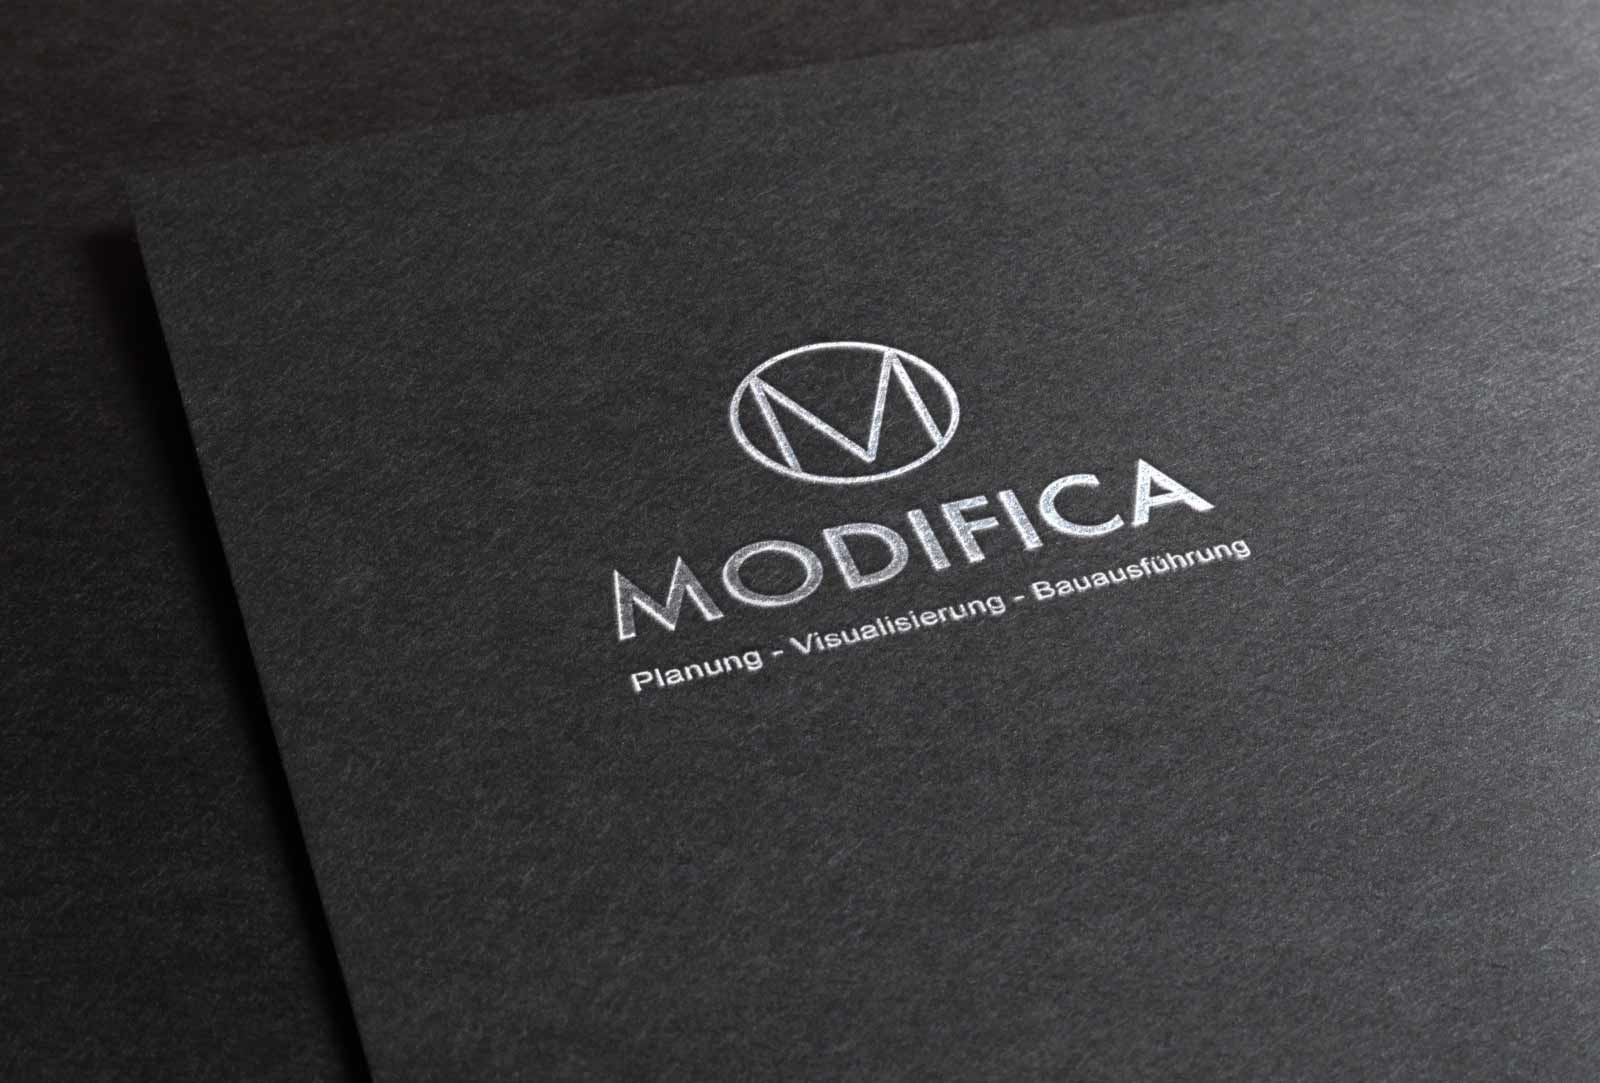 Modifica-grafikdesign